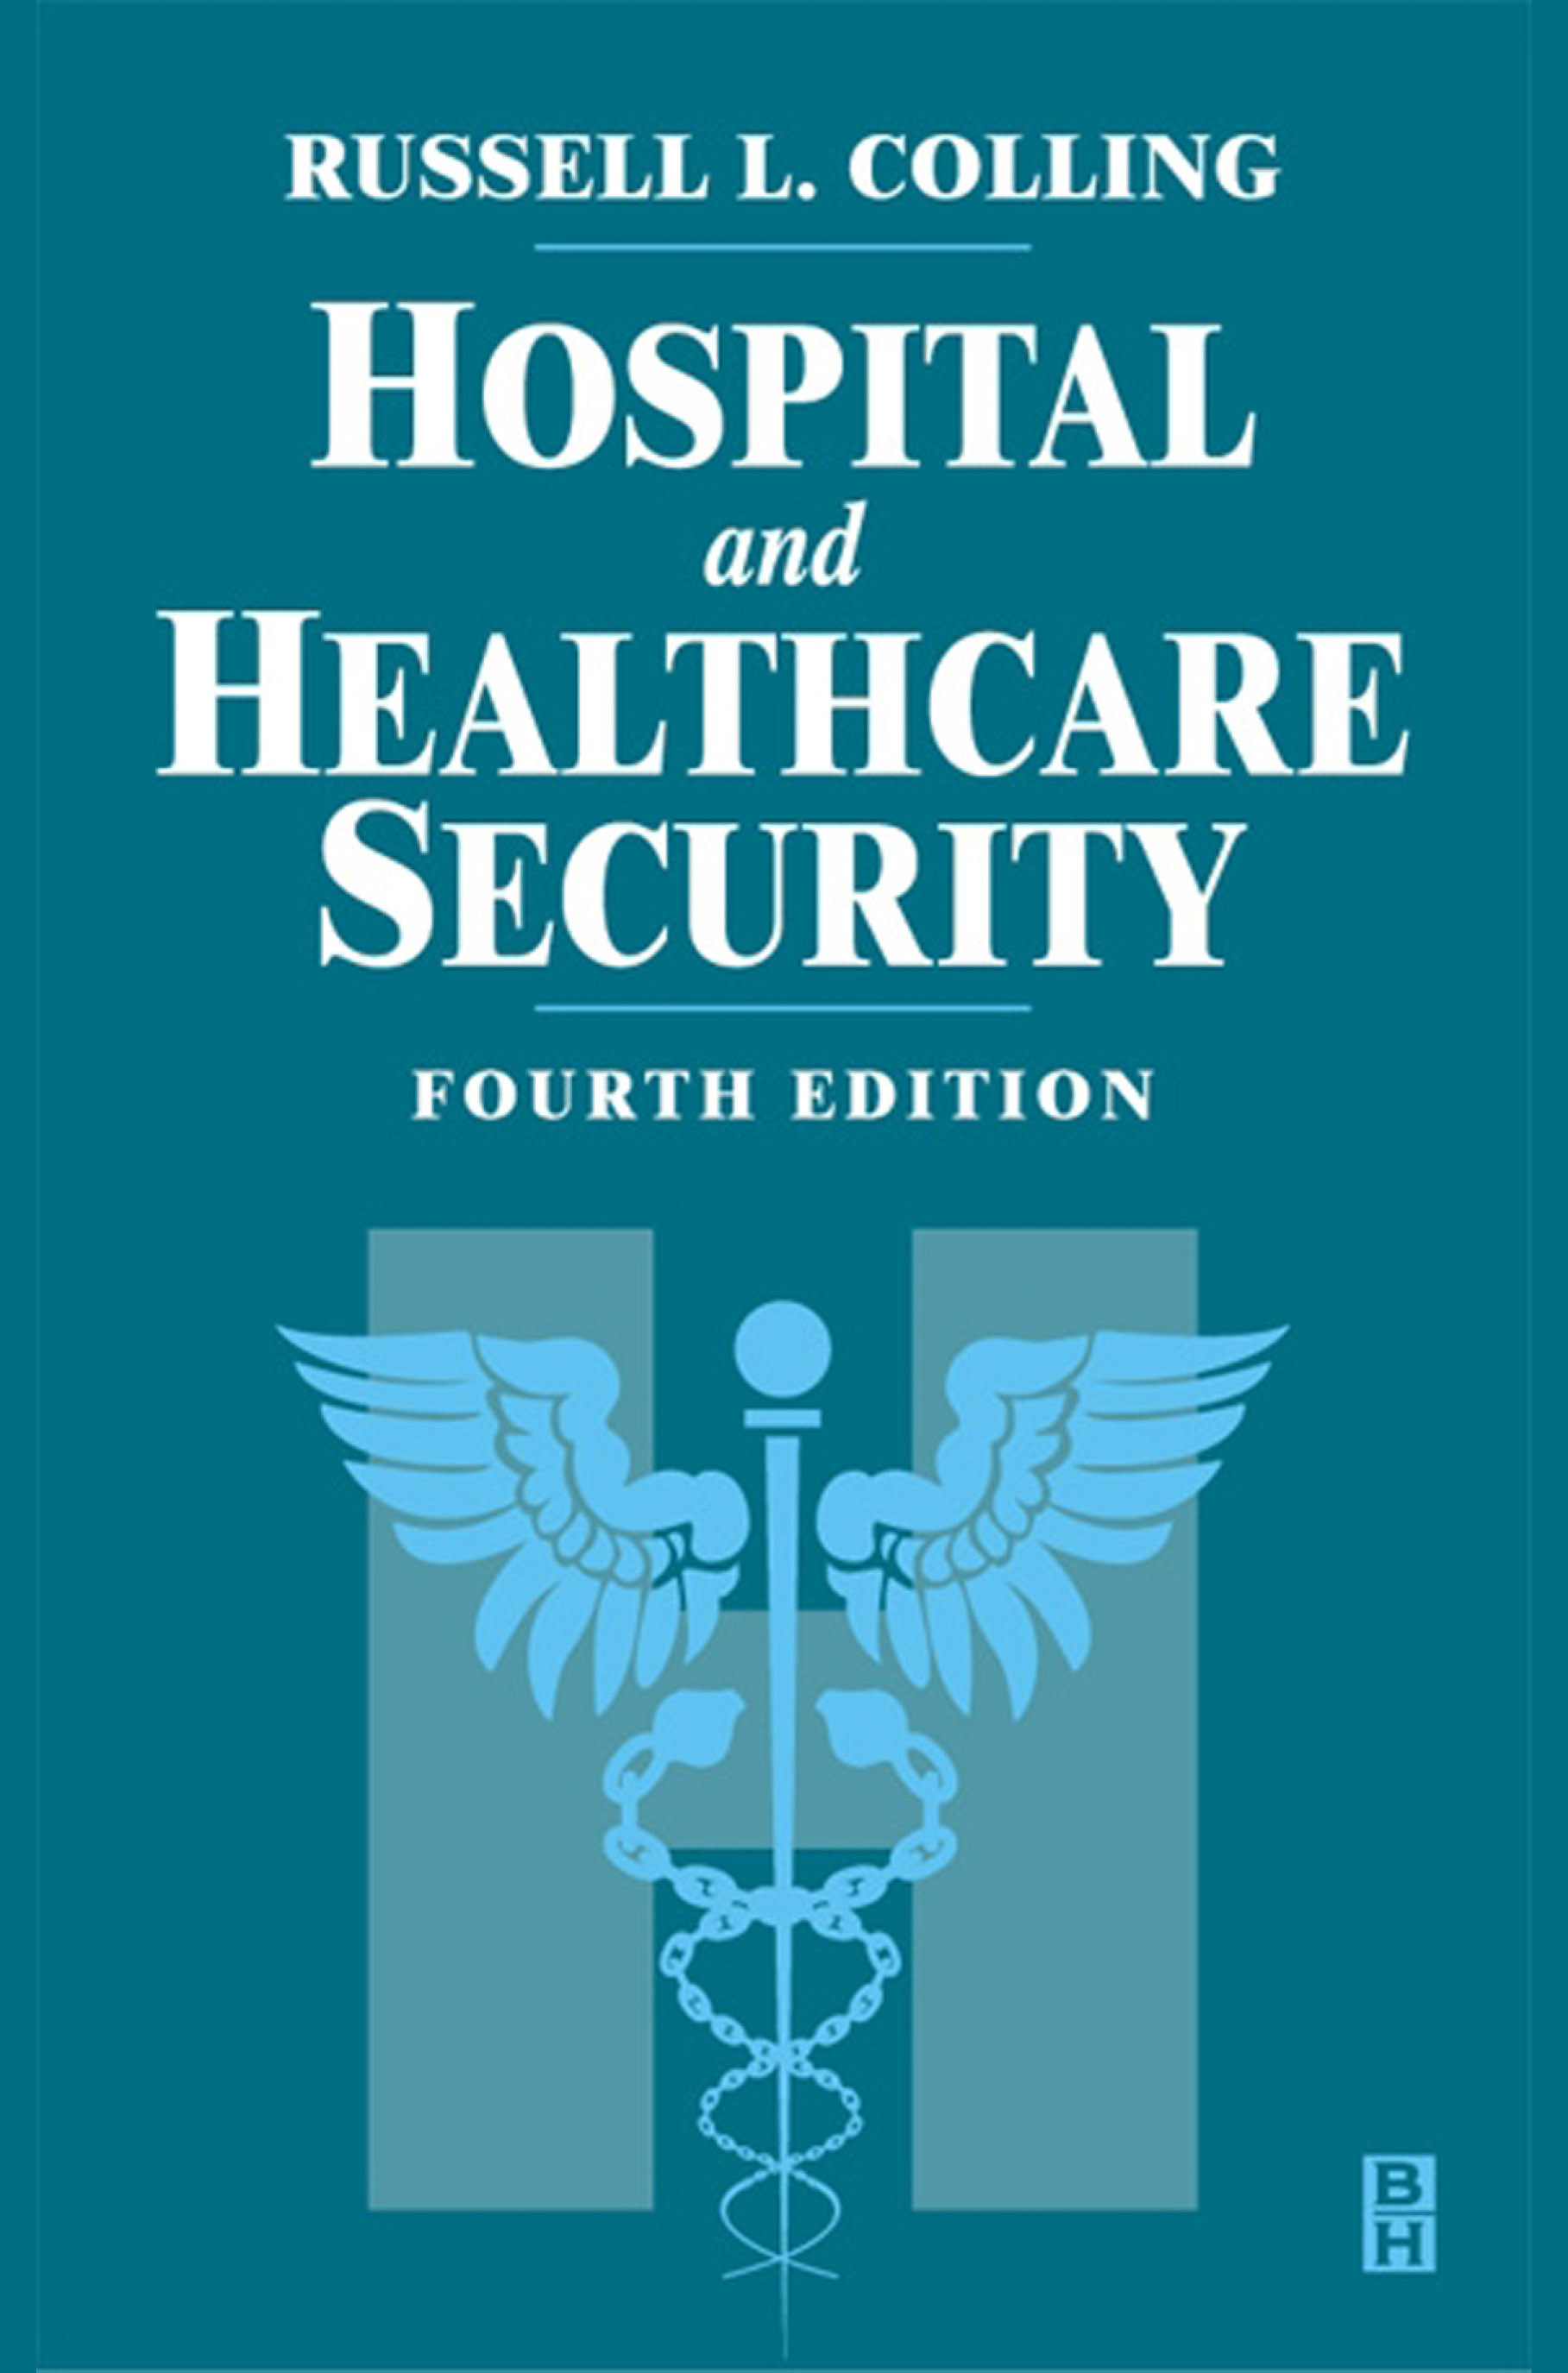 Download Ebook Hospital and Healthcare Security (4th ed.) by Tony W York Pdf